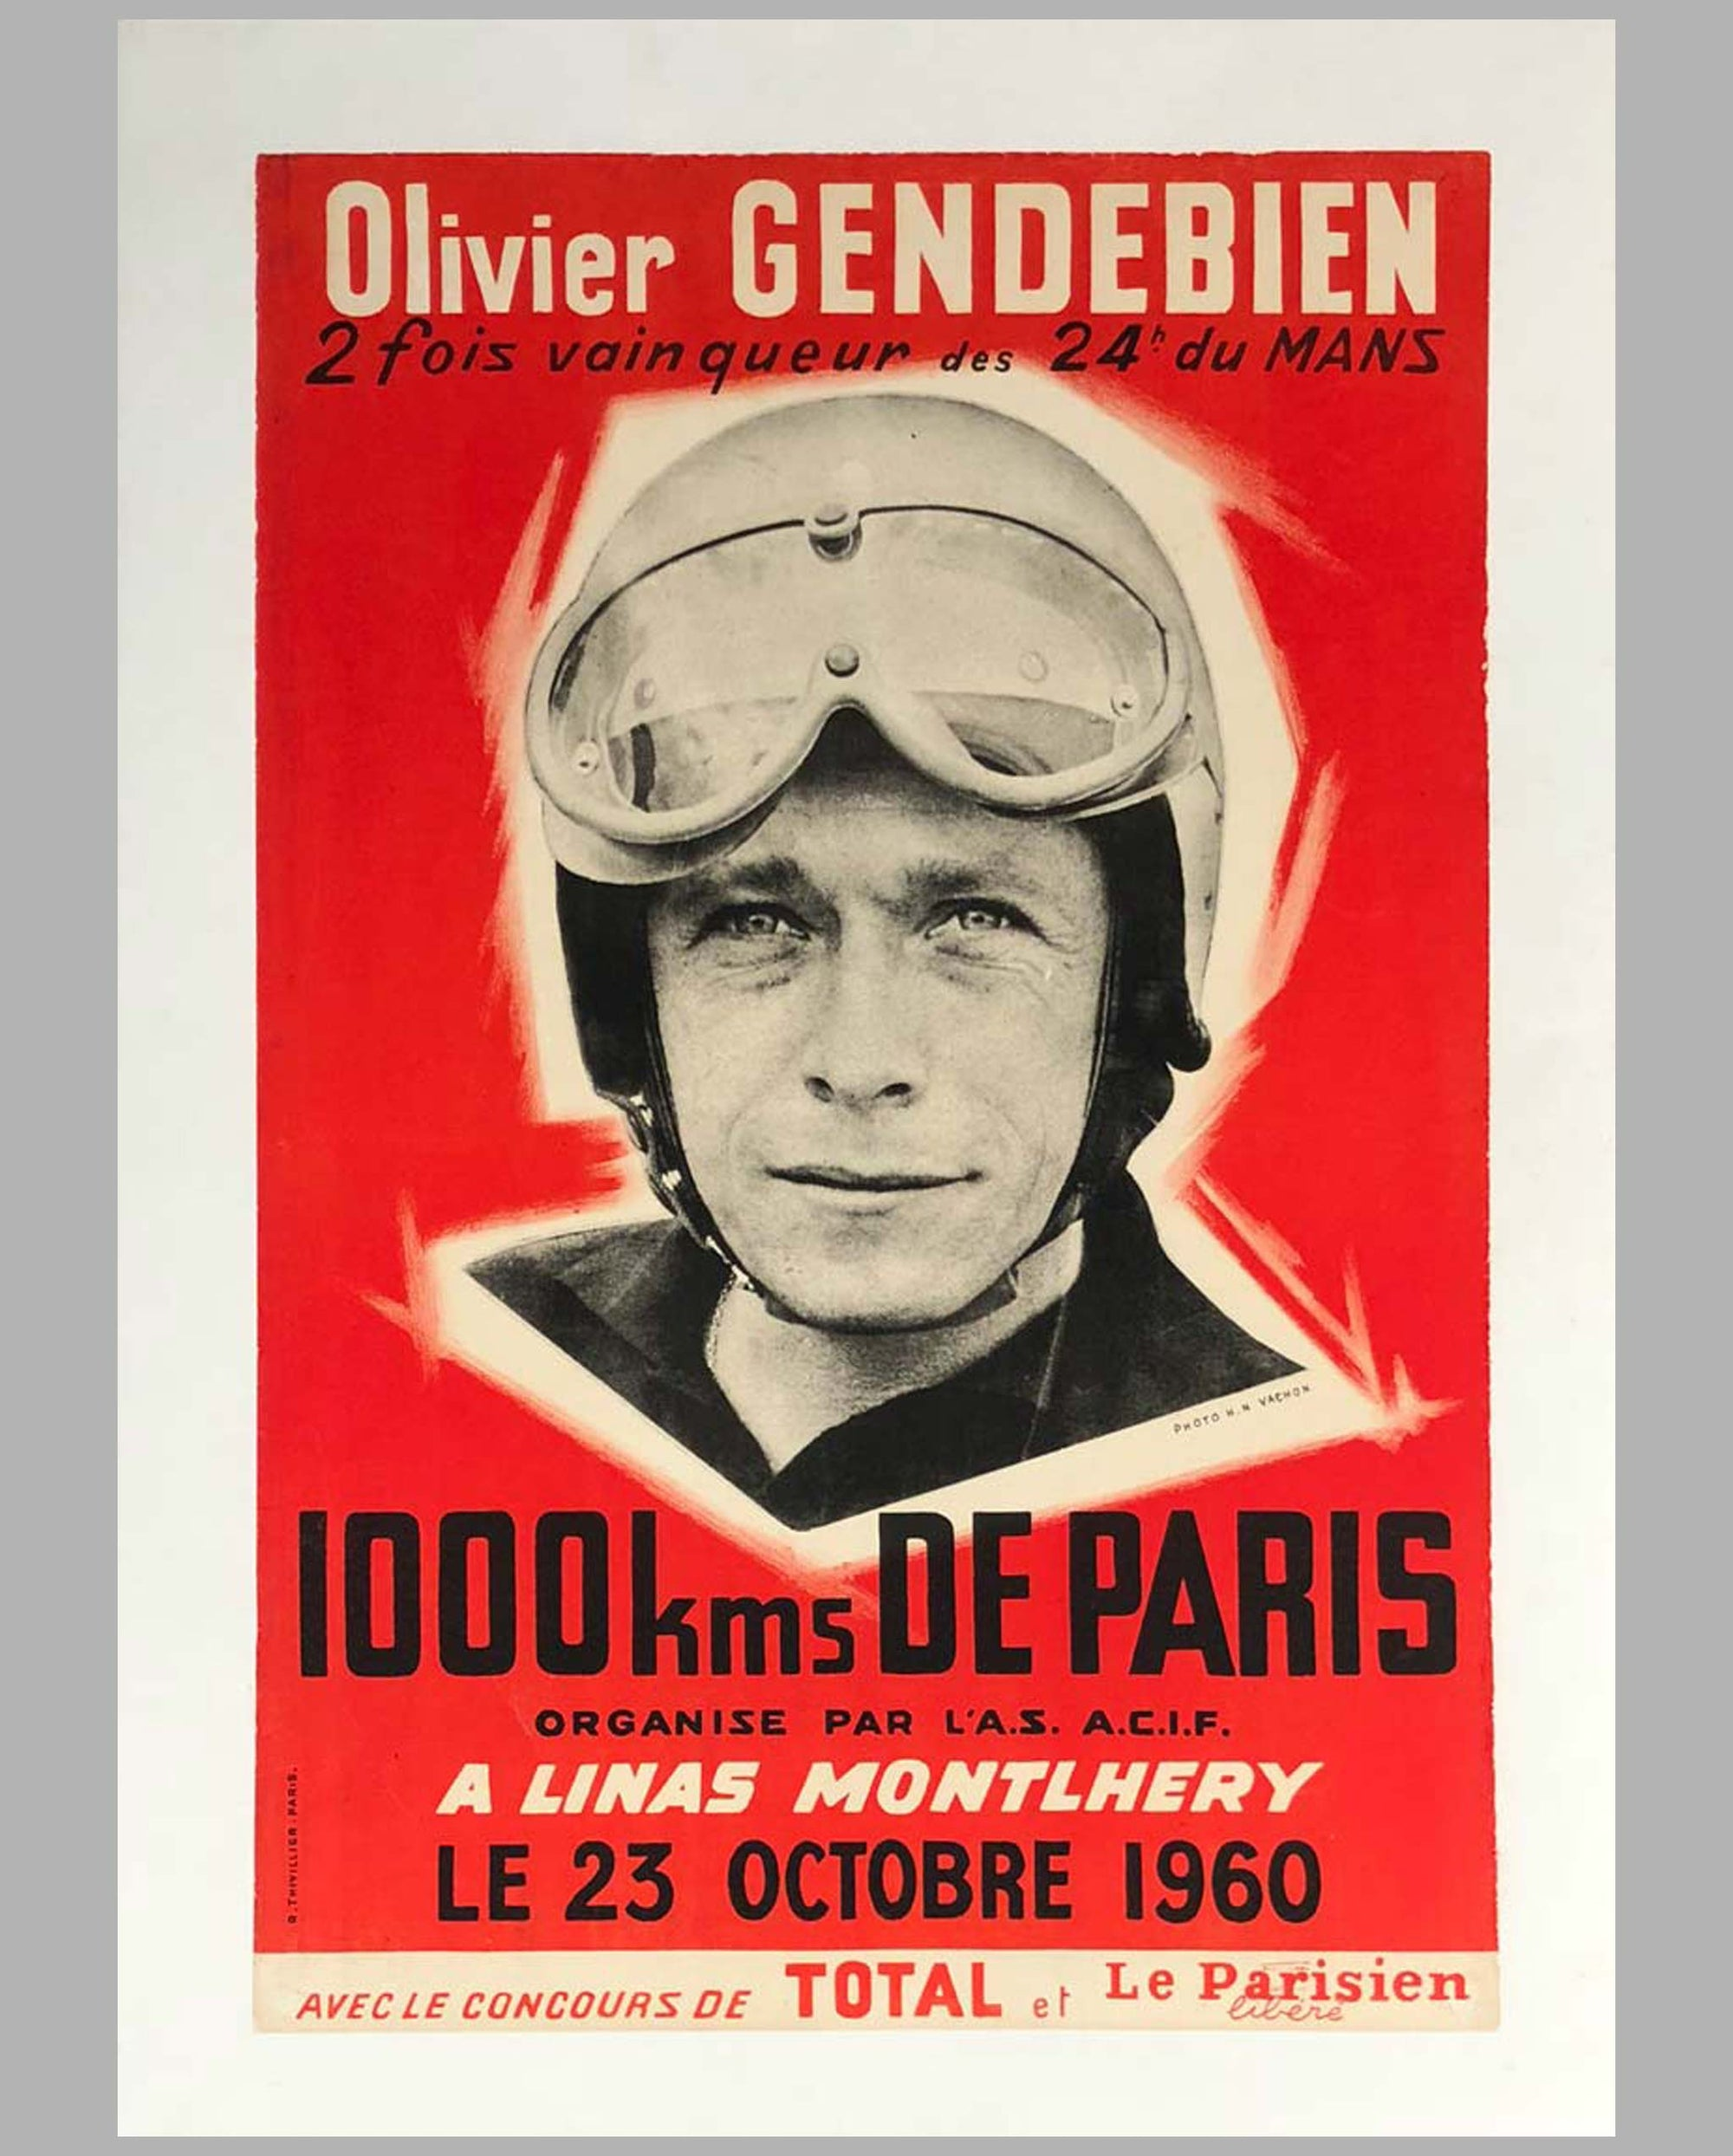 1960 - 1000 Km de Paris original advertising Poster at Montlhéry